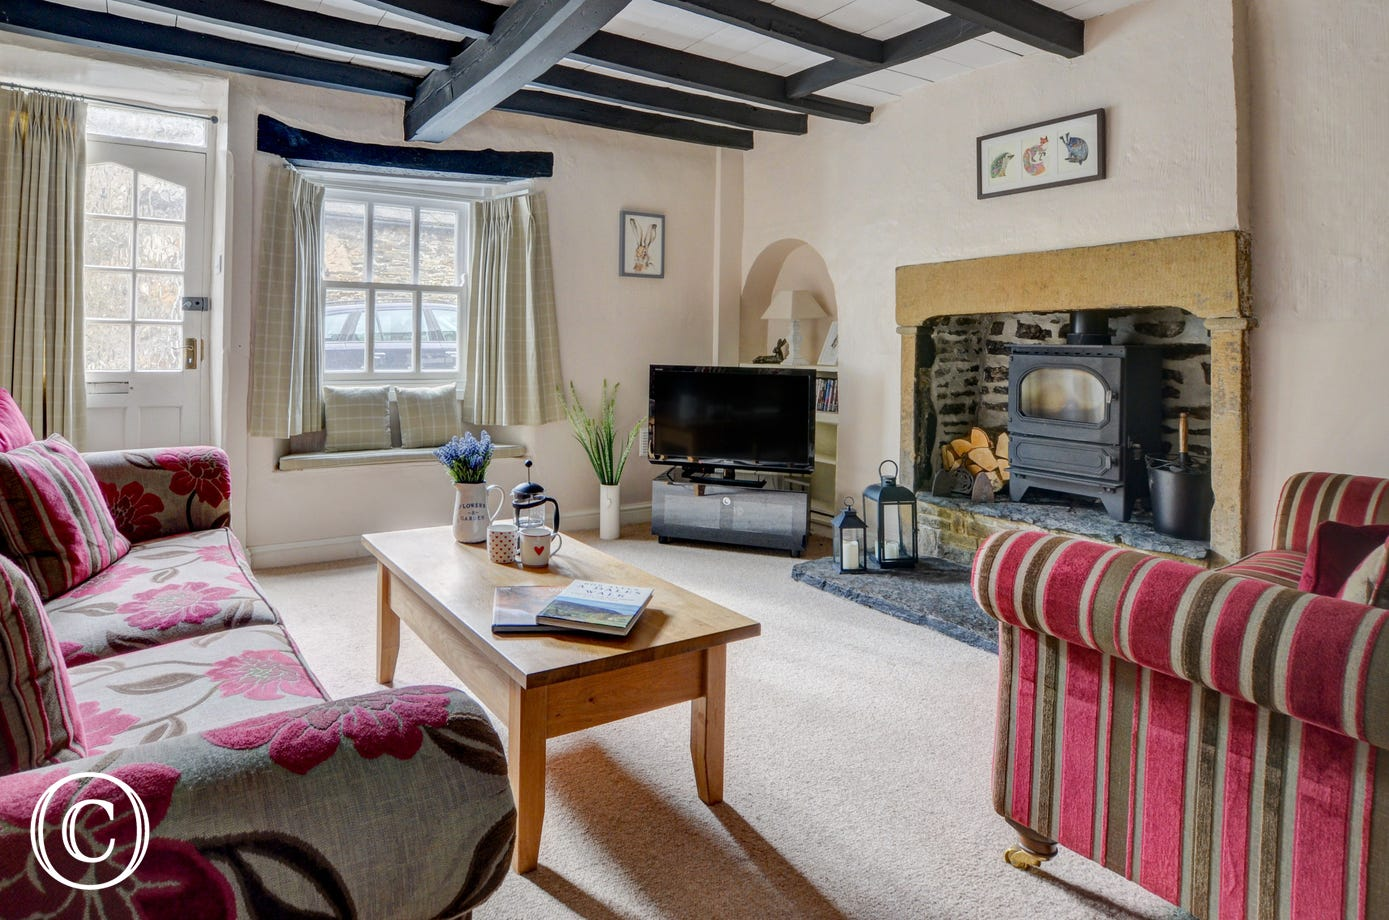 silver fern ds104 yorkshire holiday cottages rh yorkshireholidaycottages co uk Leyburn Yorkshire Leyburn Library Wu